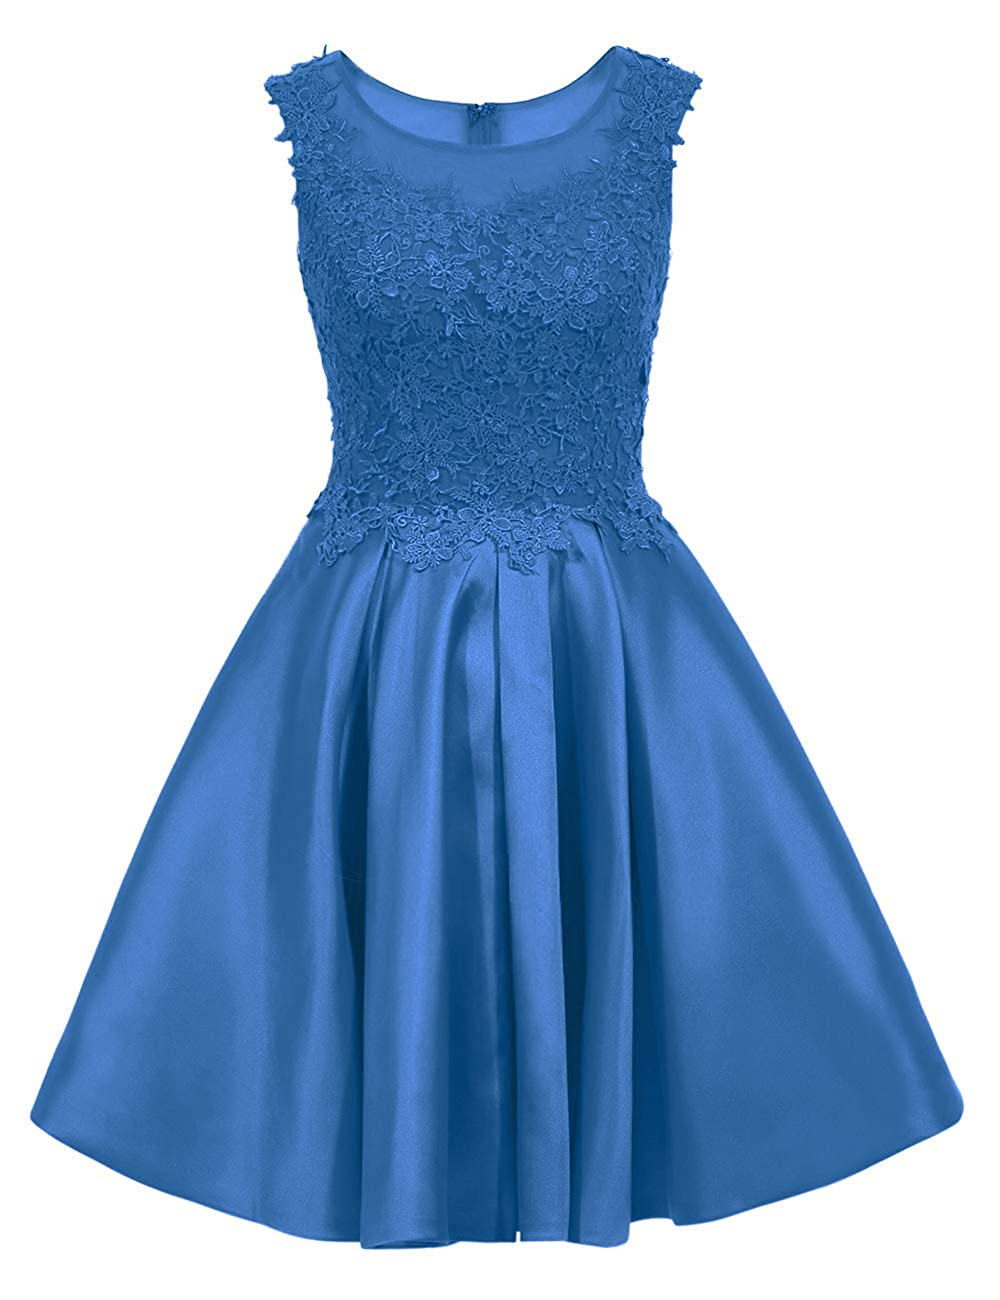 bluee Uther Short Homecoming Dress Cap Sleeves Appliques Vintage Swing Dress Cocktail Dresses